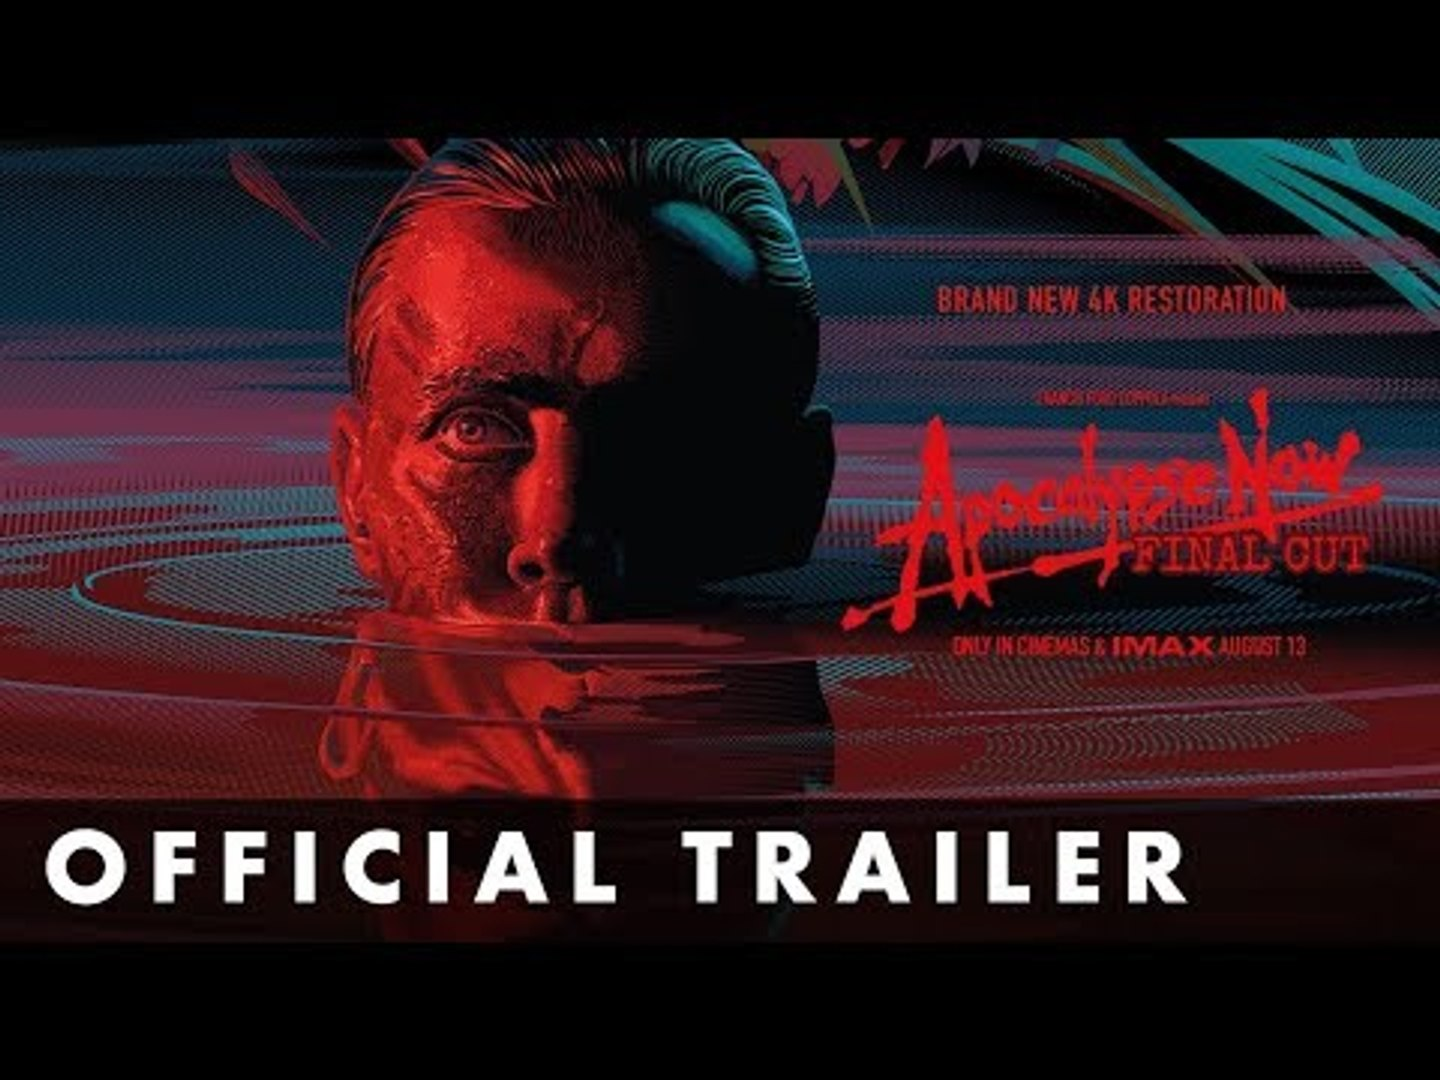 APOCALYPSE NOW: FINAL CUT - Official Trailer - Dir. by Francis Ford Coppola